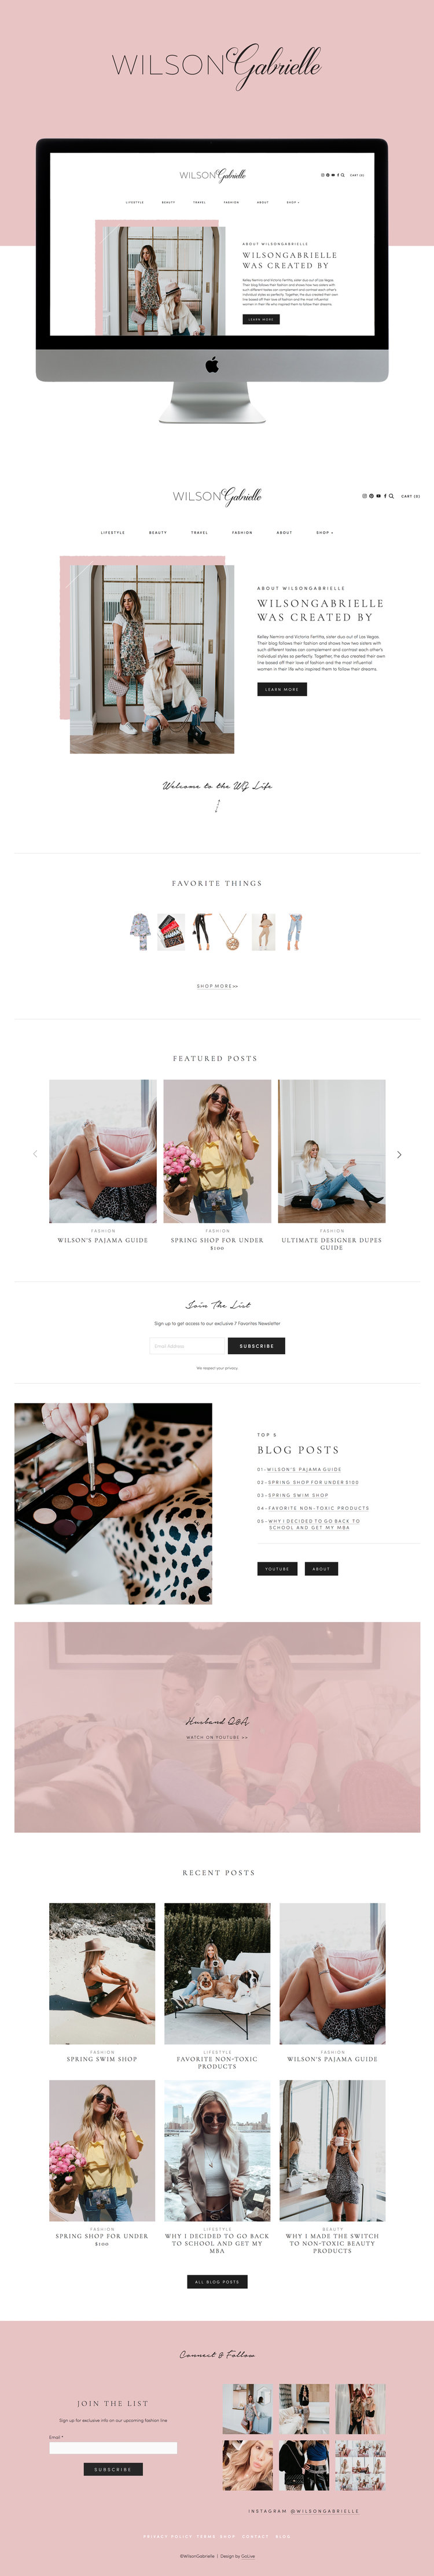 Editorial,+clean,+feminine+Squarespace+Website+Design+For+Lifestyle+Blogger+_+By+GoLive (2).jpg